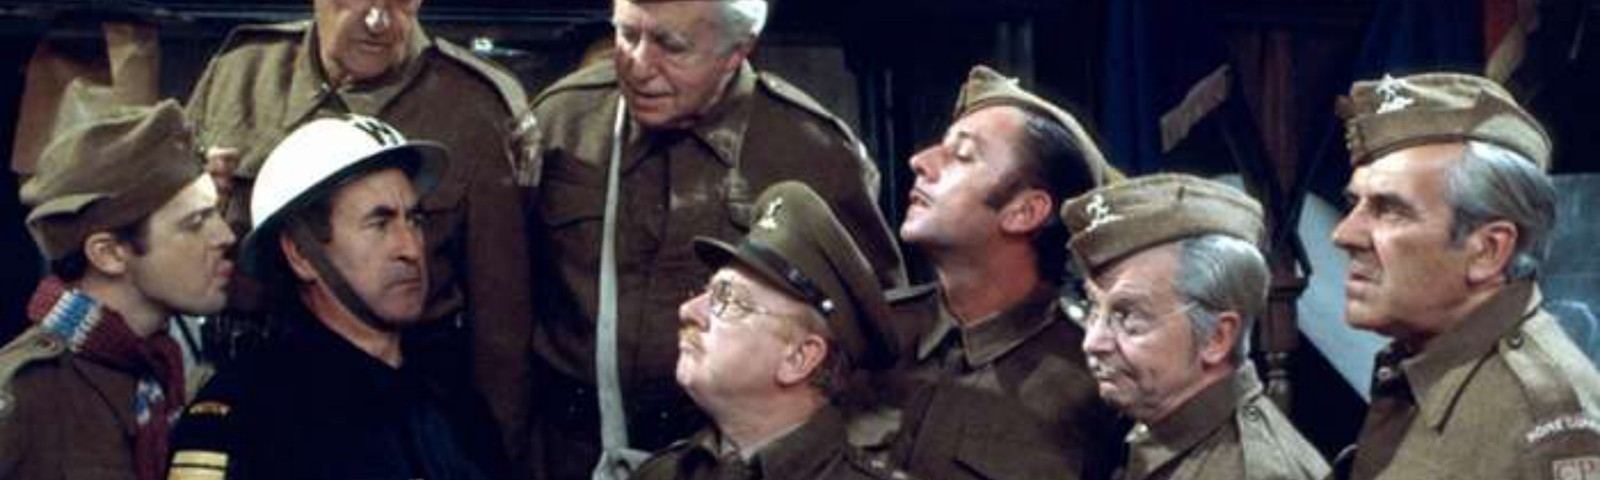 Soldiers of the Home Guard in an episode of BBC comedy, Dad's Army